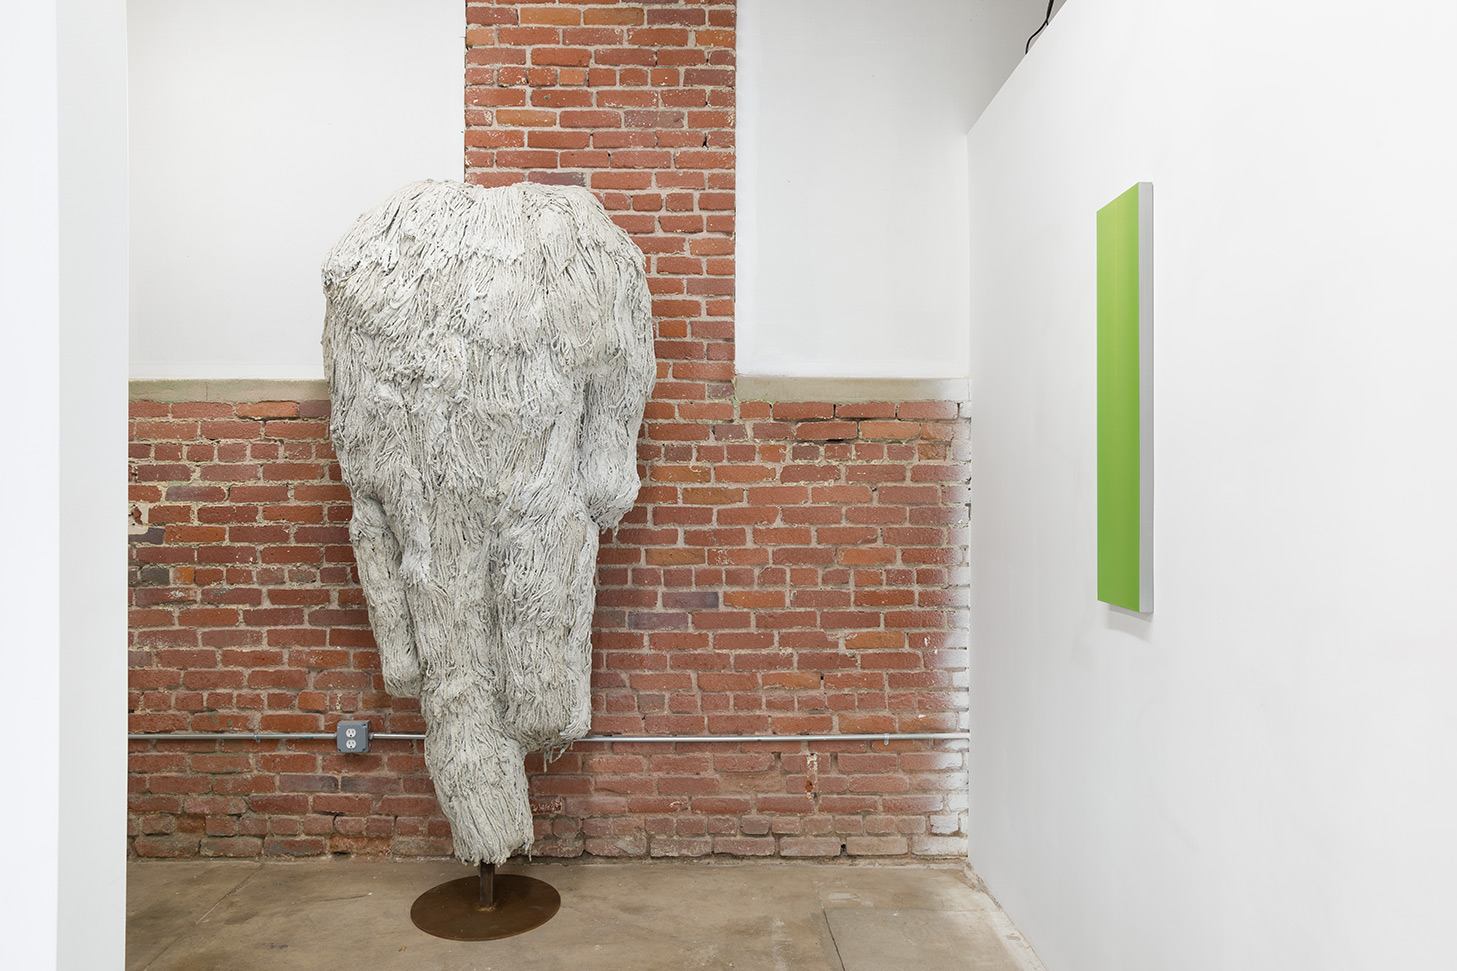 Evans Wittenberg, Overcombiner, 2015, rapid-set cement, mops and stell, 6 ½ x 4 x 2 feet